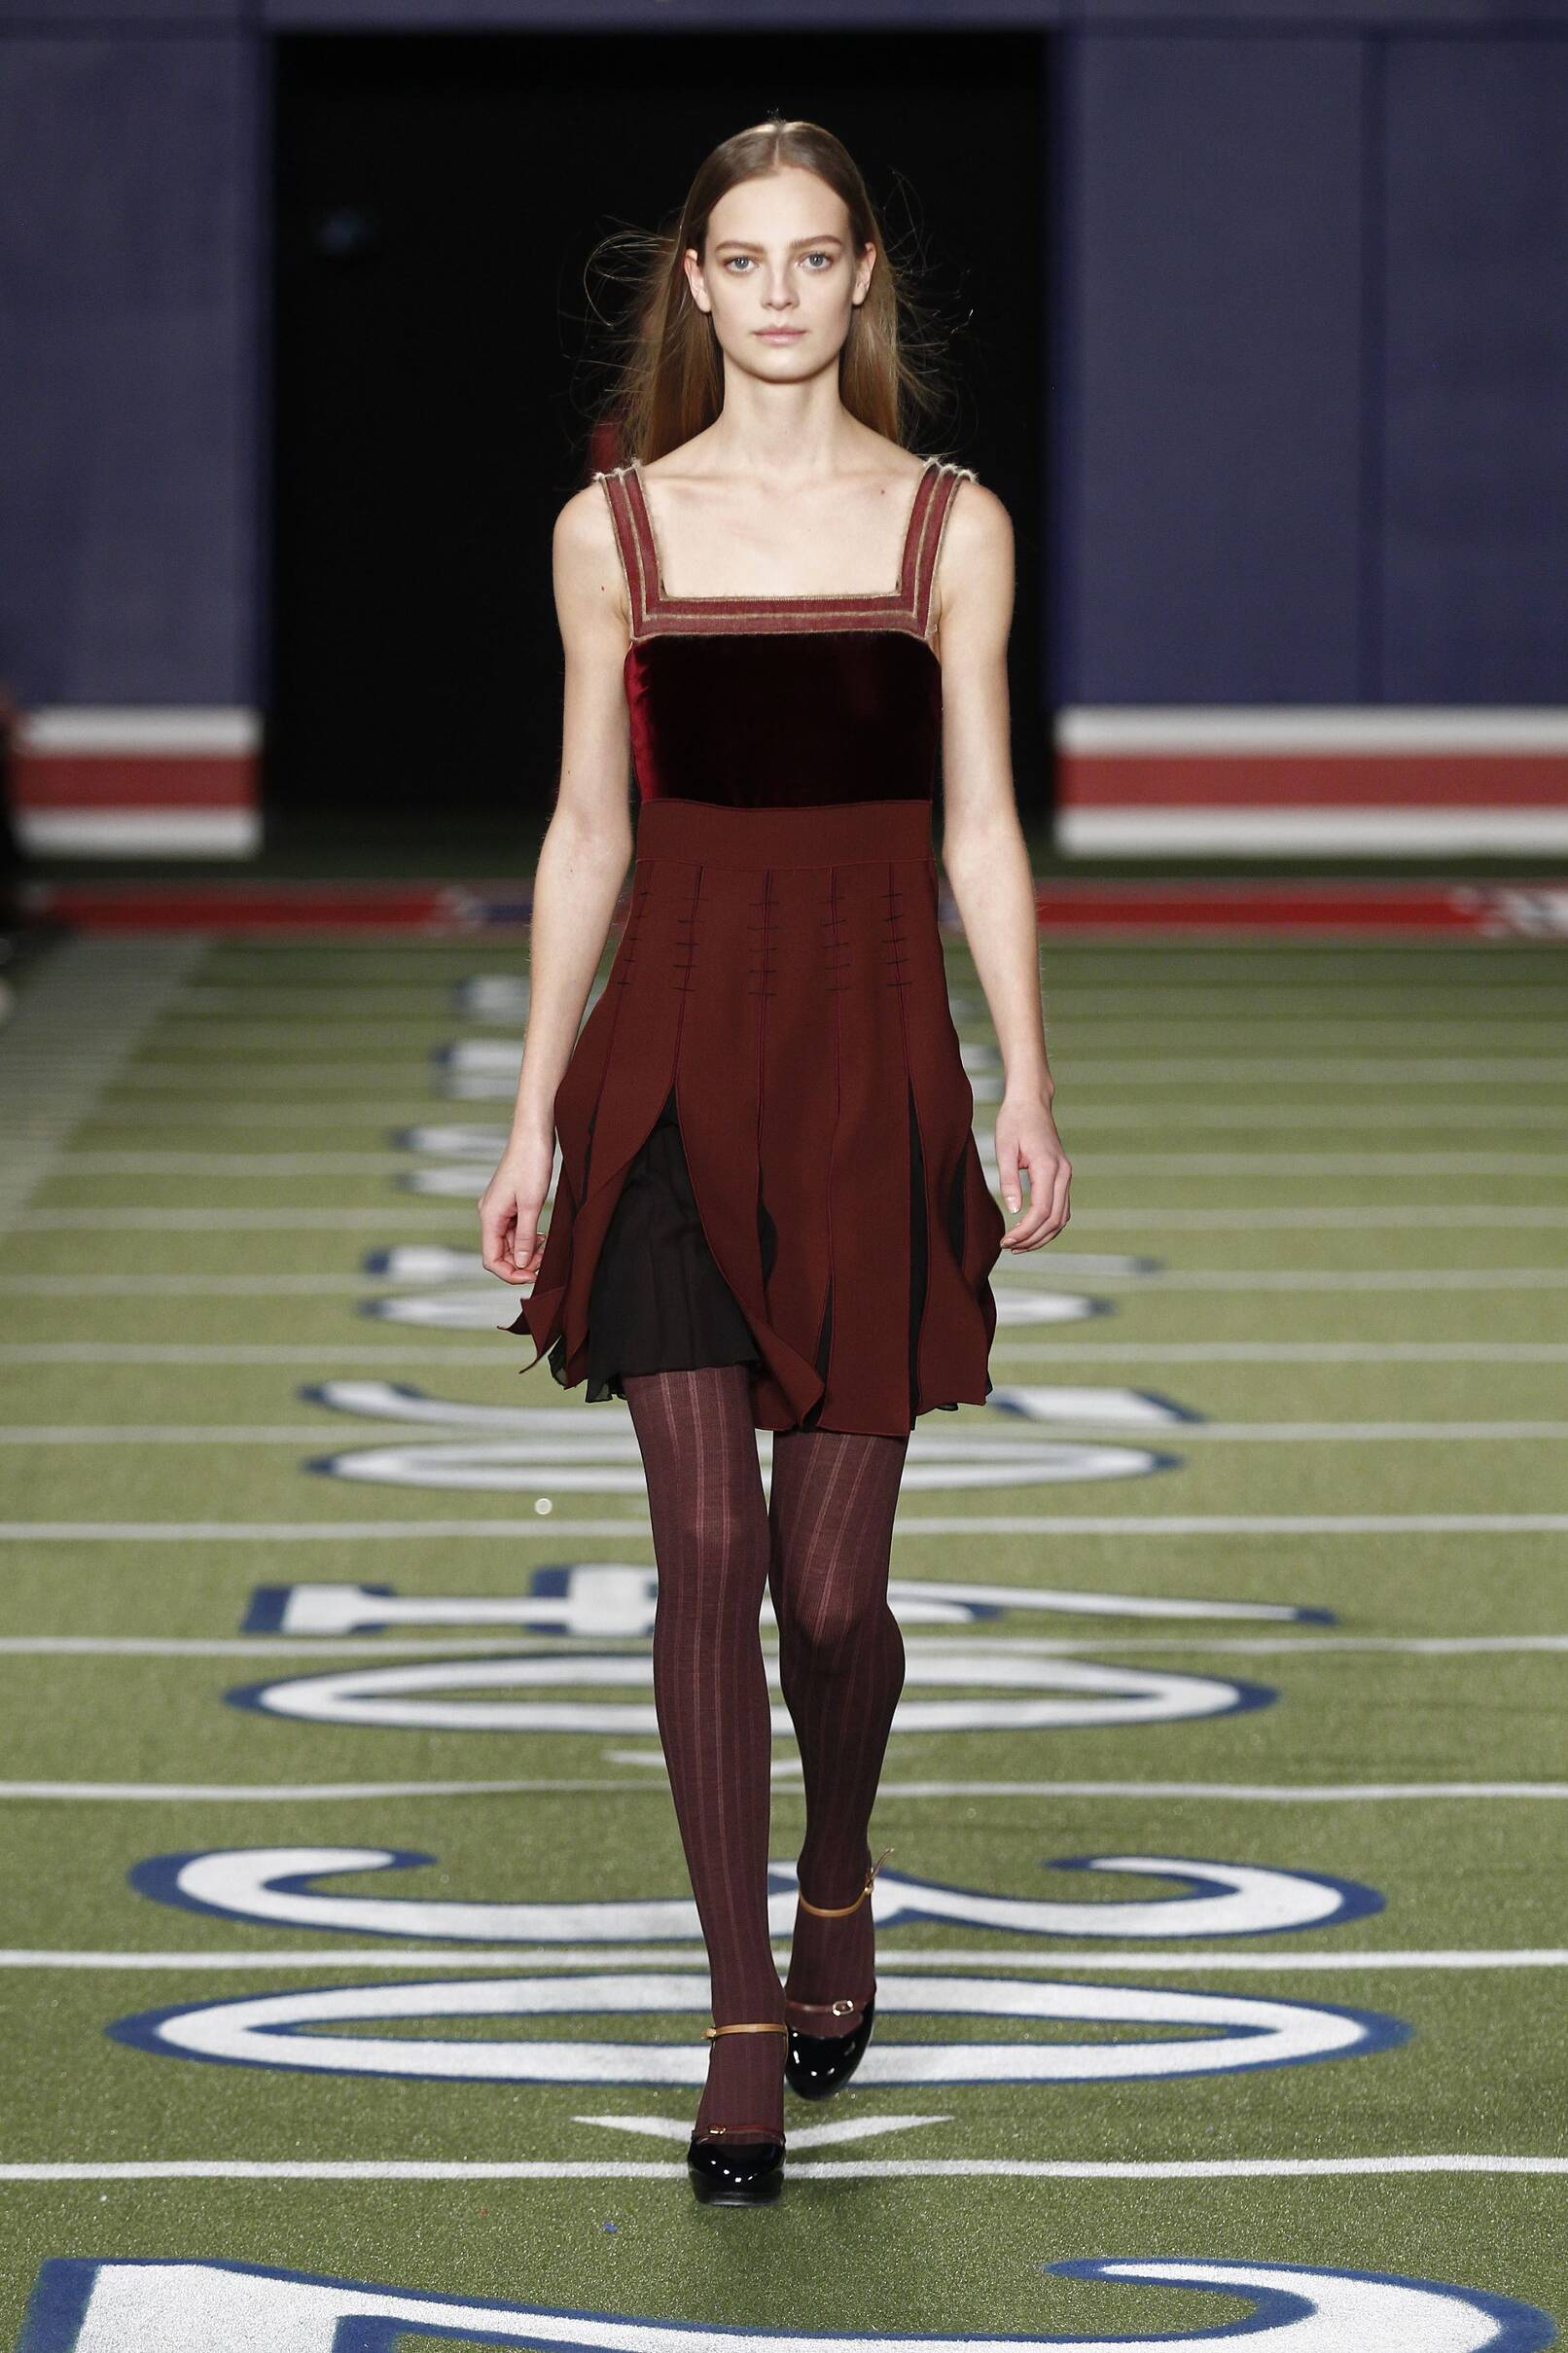 Tommy Hilfiger Fall Winter 2015 16 Women's Collection New York Fashion Week Fashion Show